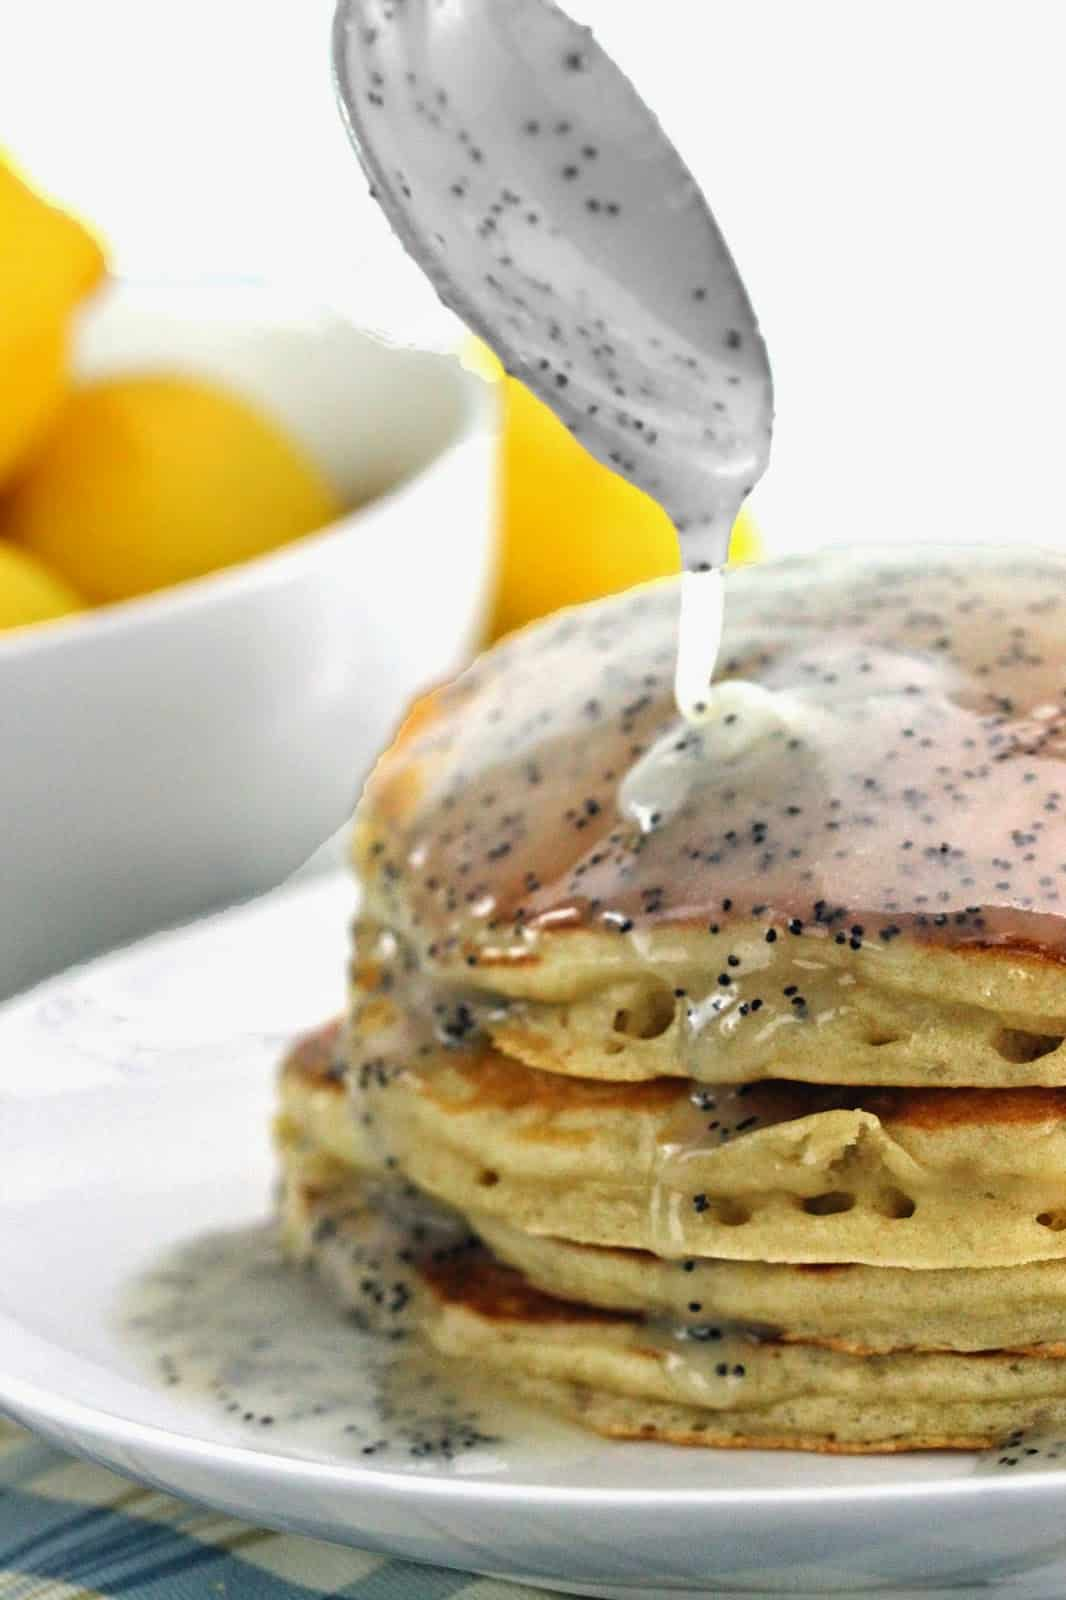 Lemon Poppyseed Buttermilk Syrup being poured on a stack of pancakes.